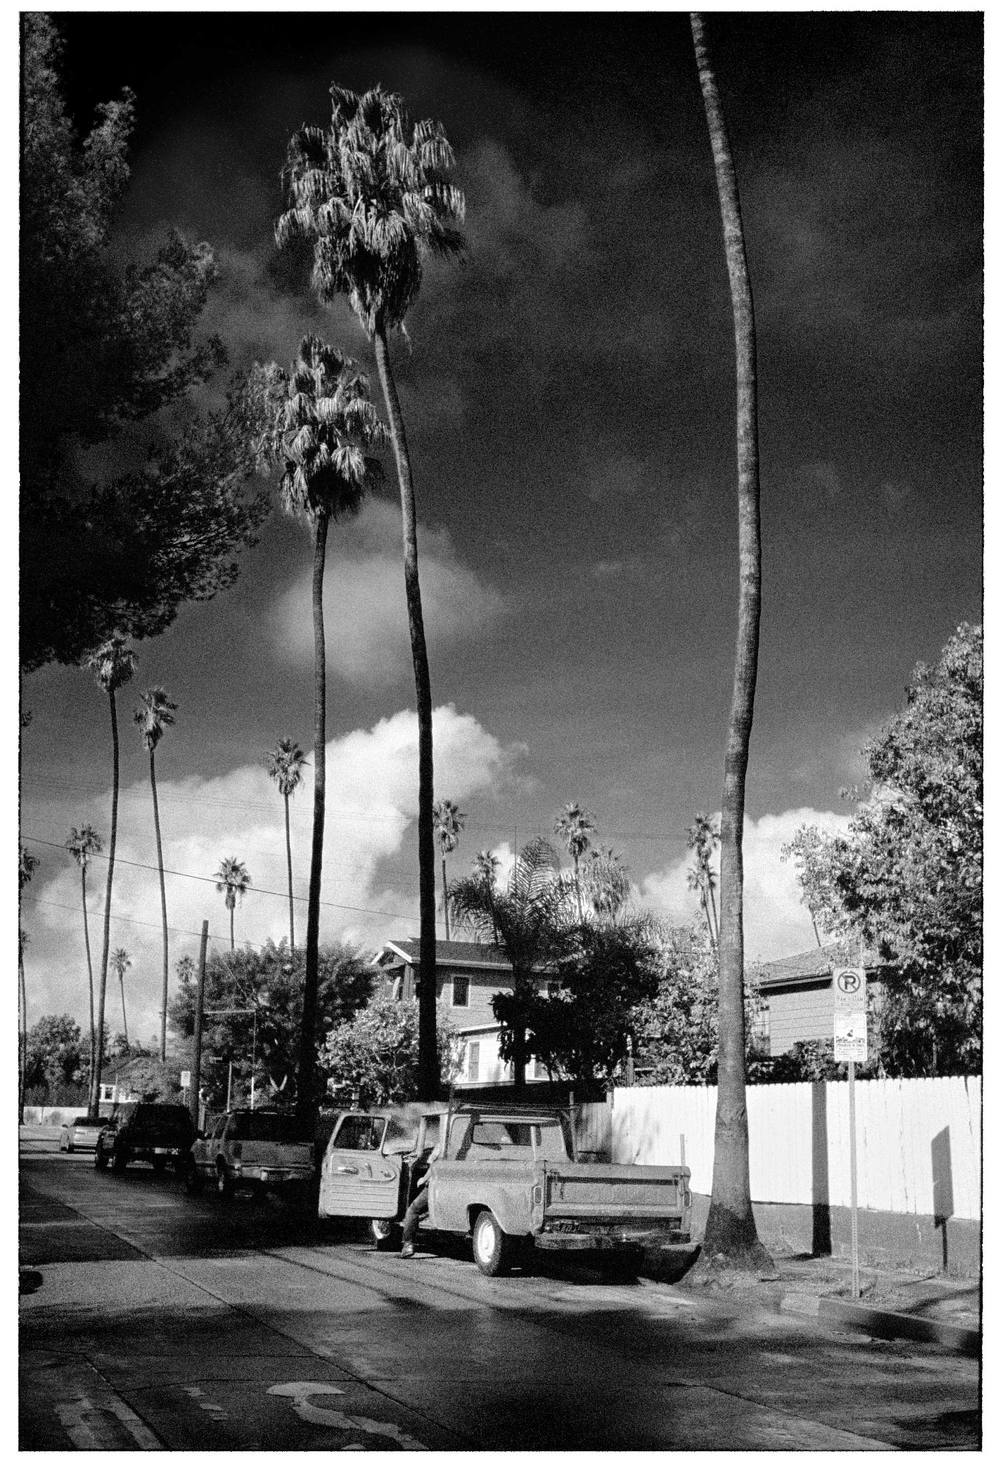 22_KB27_12_Palm_Clouds_Venice_Ford_sharp60_whiteFrame_BW.jpg